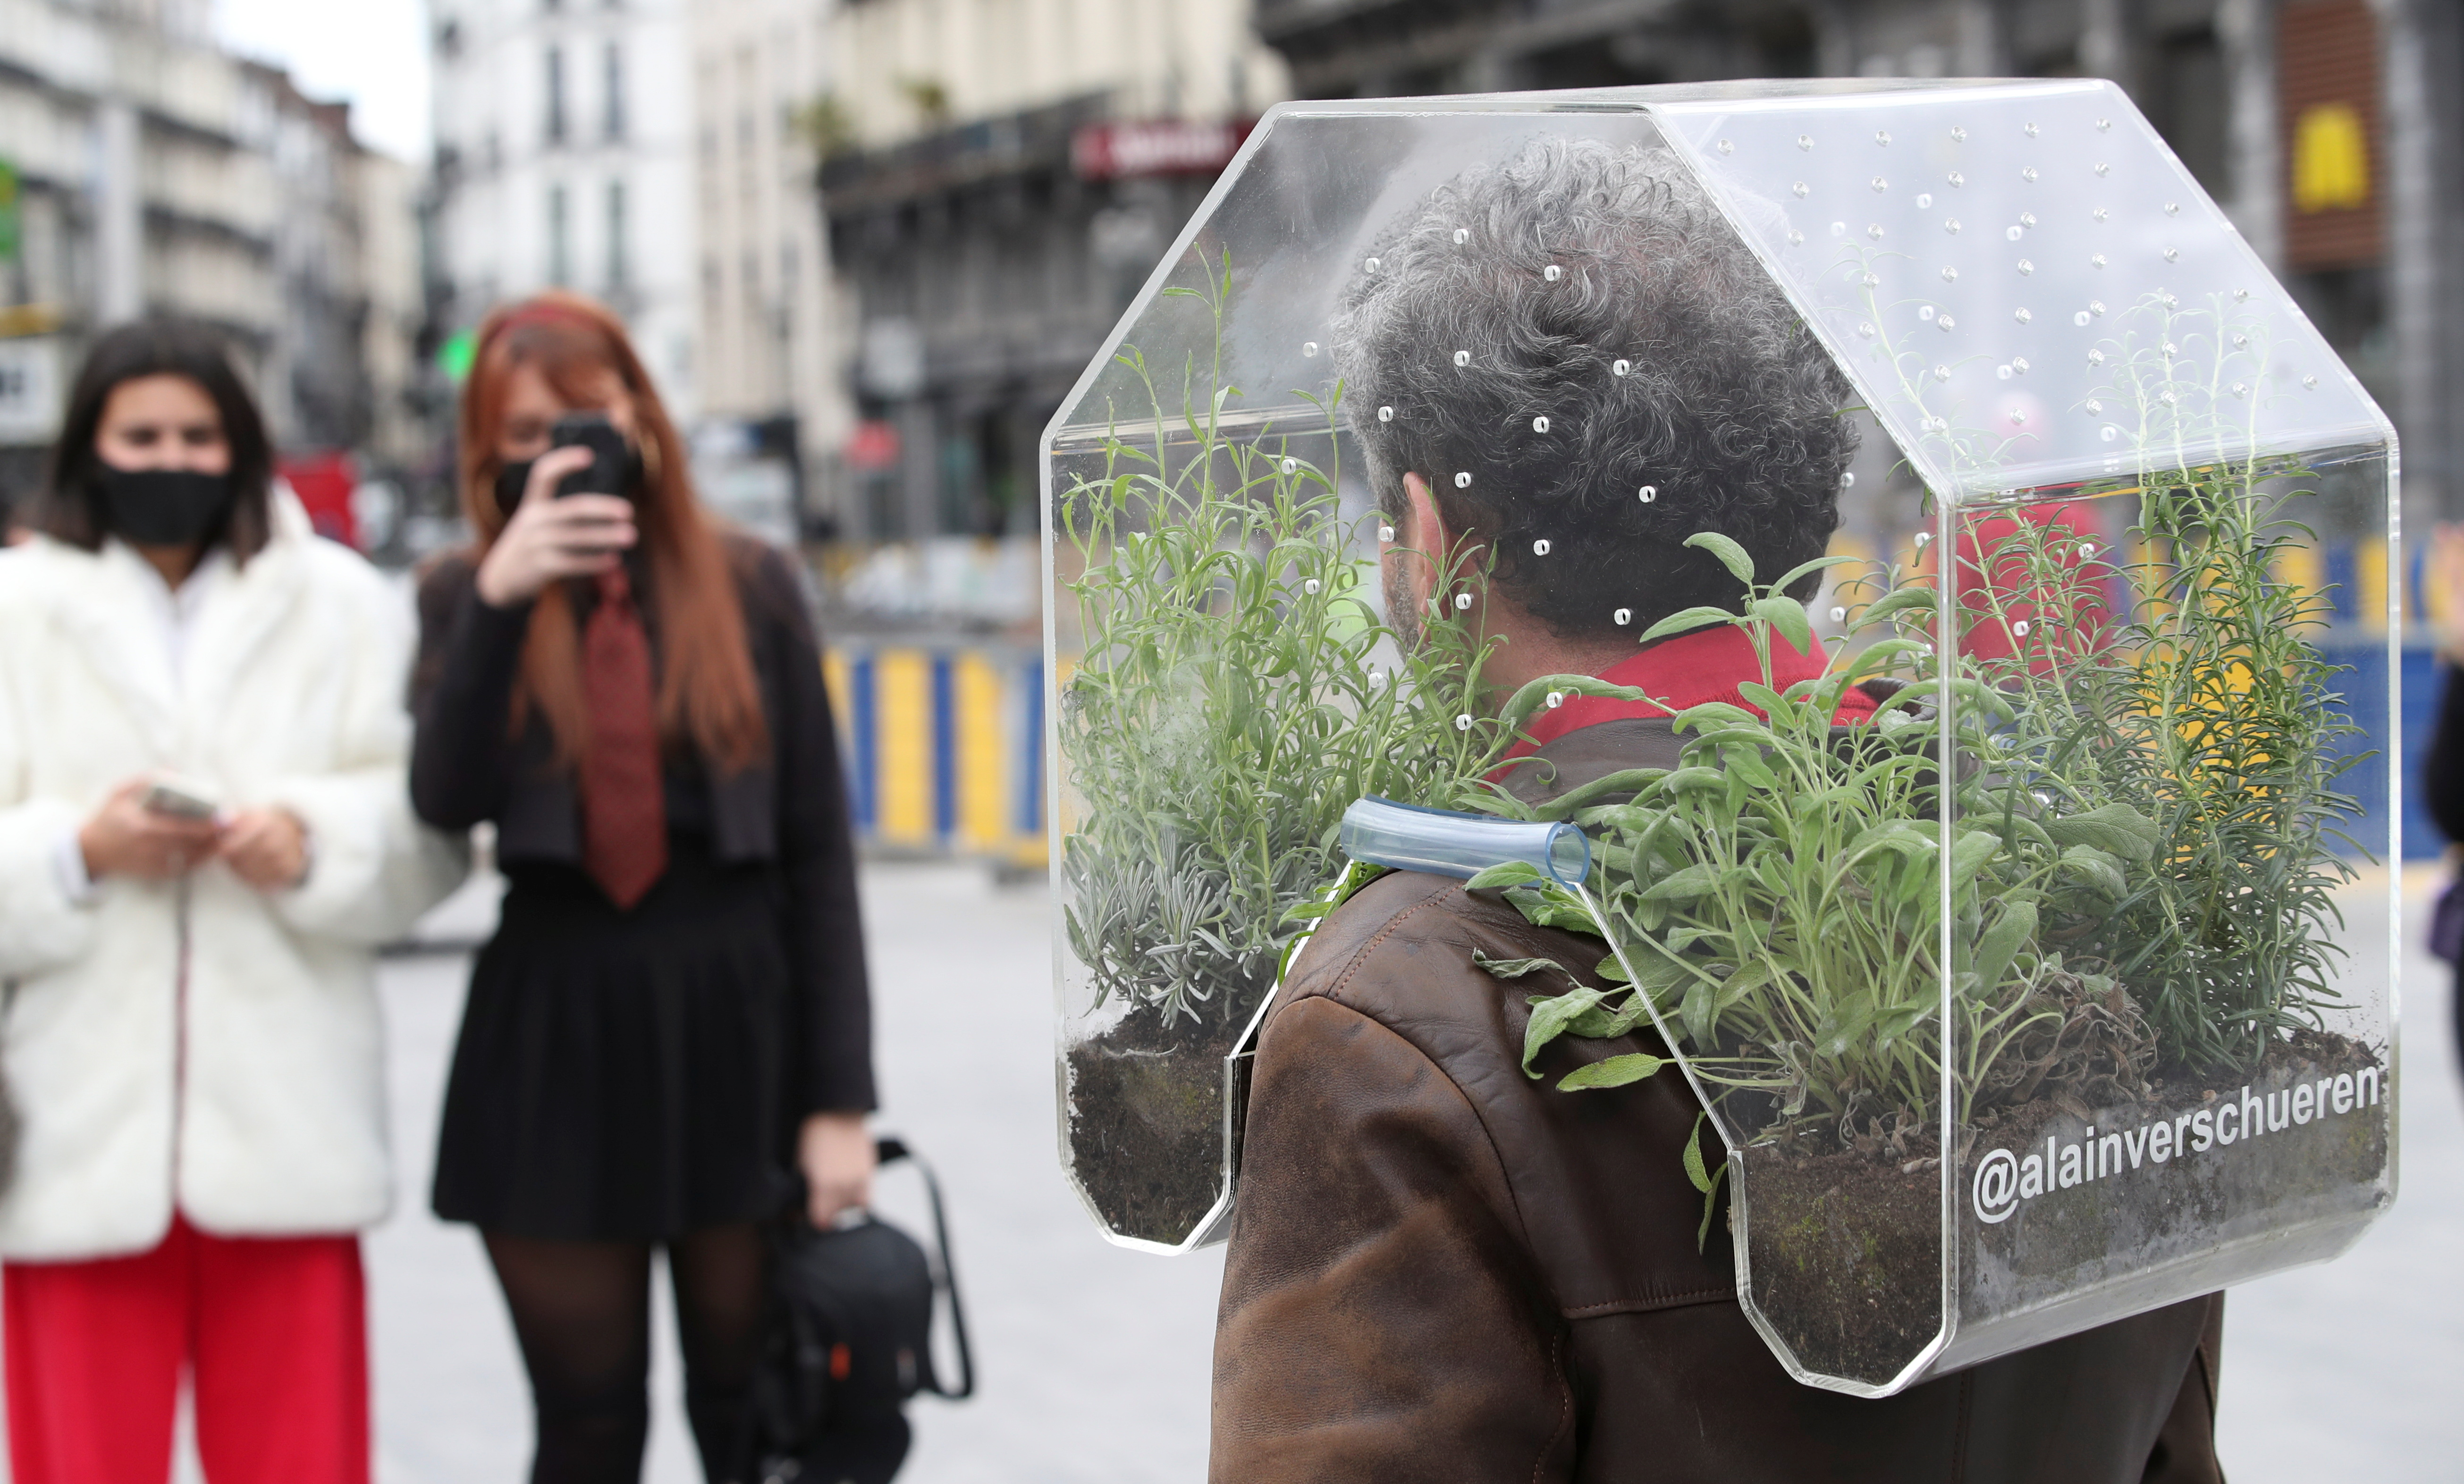 """Belgian artist Alain Verschueren wears his """"Portable Oasis"""" while performing in a street, saying he wanted to be in his bubble in the middle of the city, amid the coronavirus disease (COVID-19) outbreak in Brussels, Belgium April 16, 2021. Picture taken April 16, 2021. REUTERS/Yves Herman"""